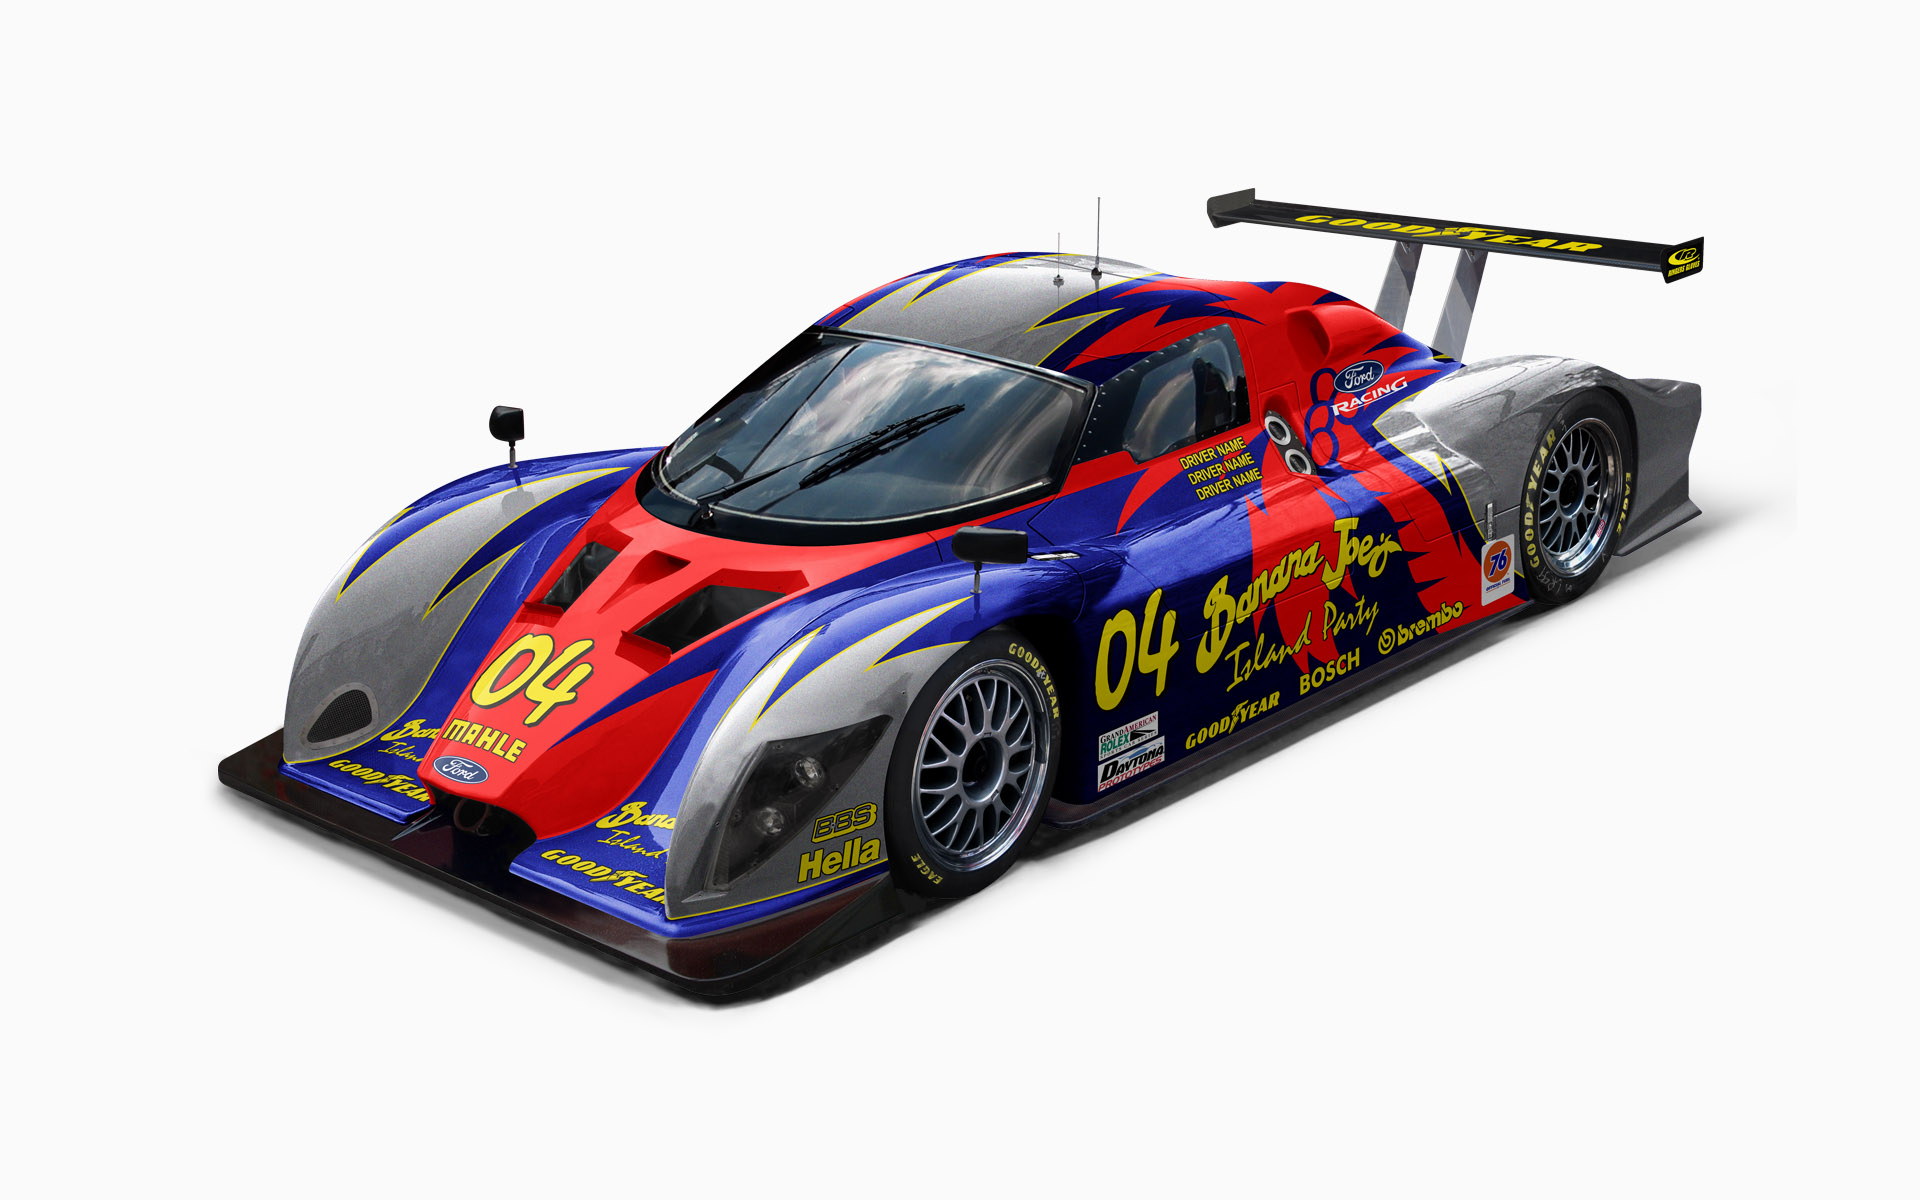 Banana Joe's Multimatic Daytona Prototype Livery Visualization